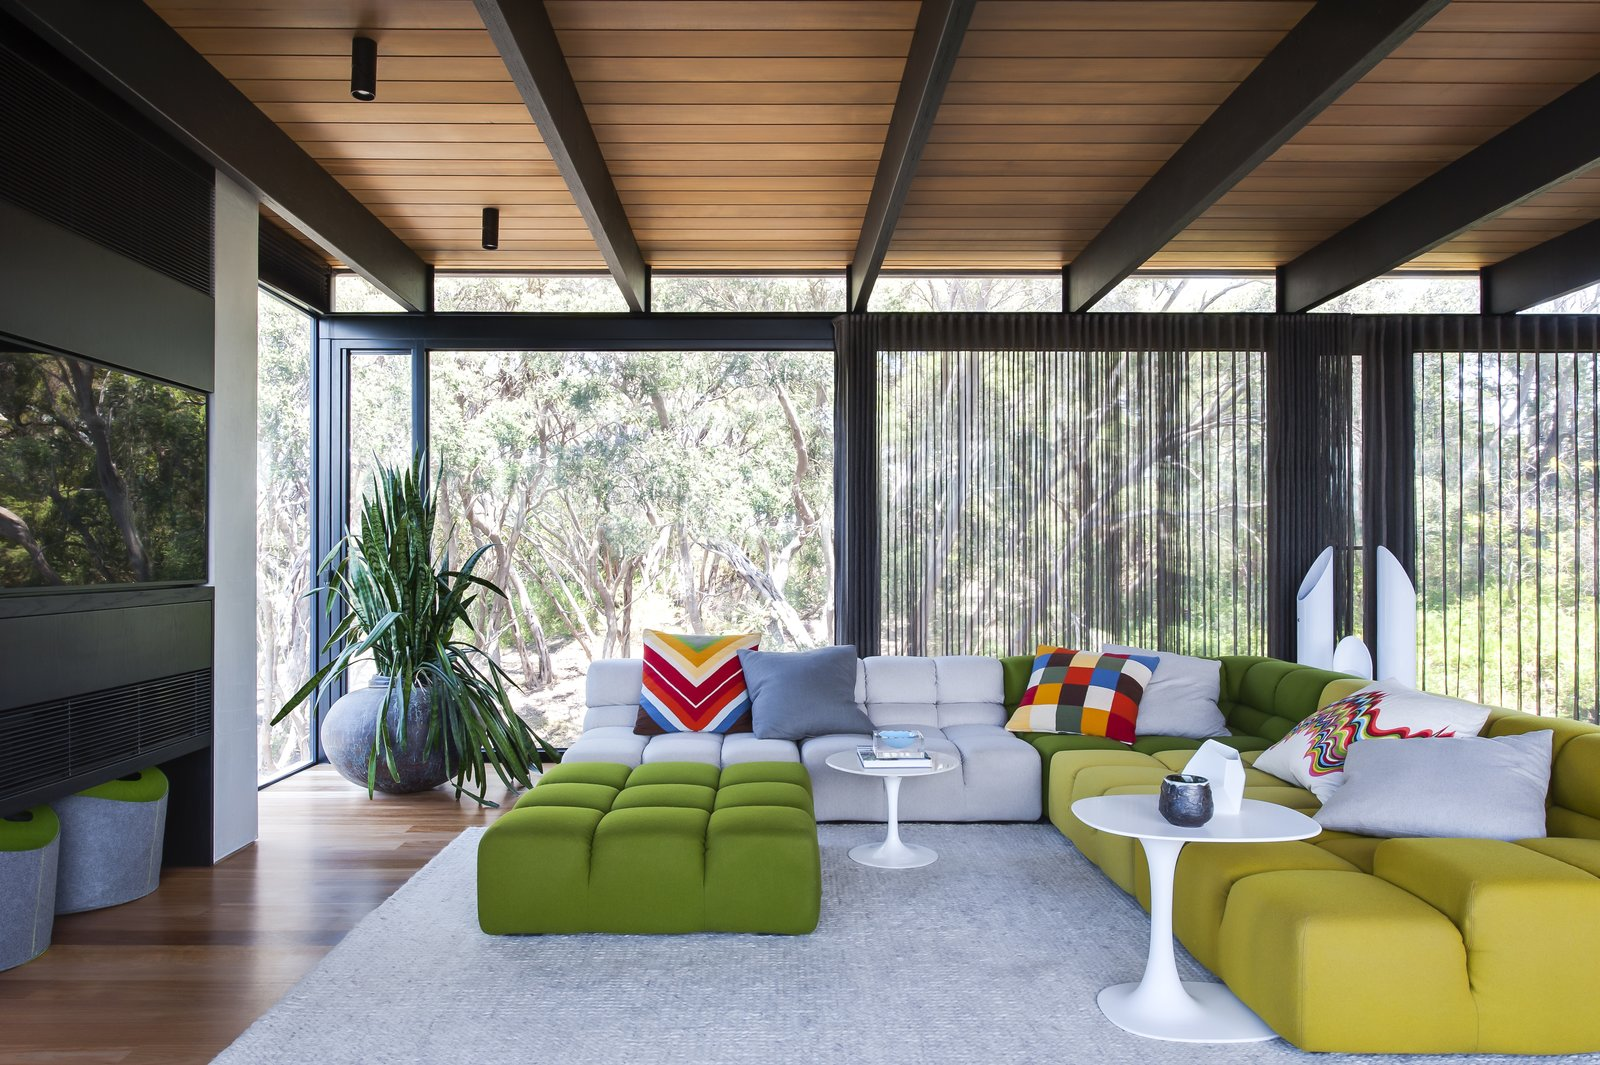 Living Room, End Tables, and Sectional  Photo 1 of 7 in Unexpected Bursts of Color Enliven a Midcentury Pad in Australia